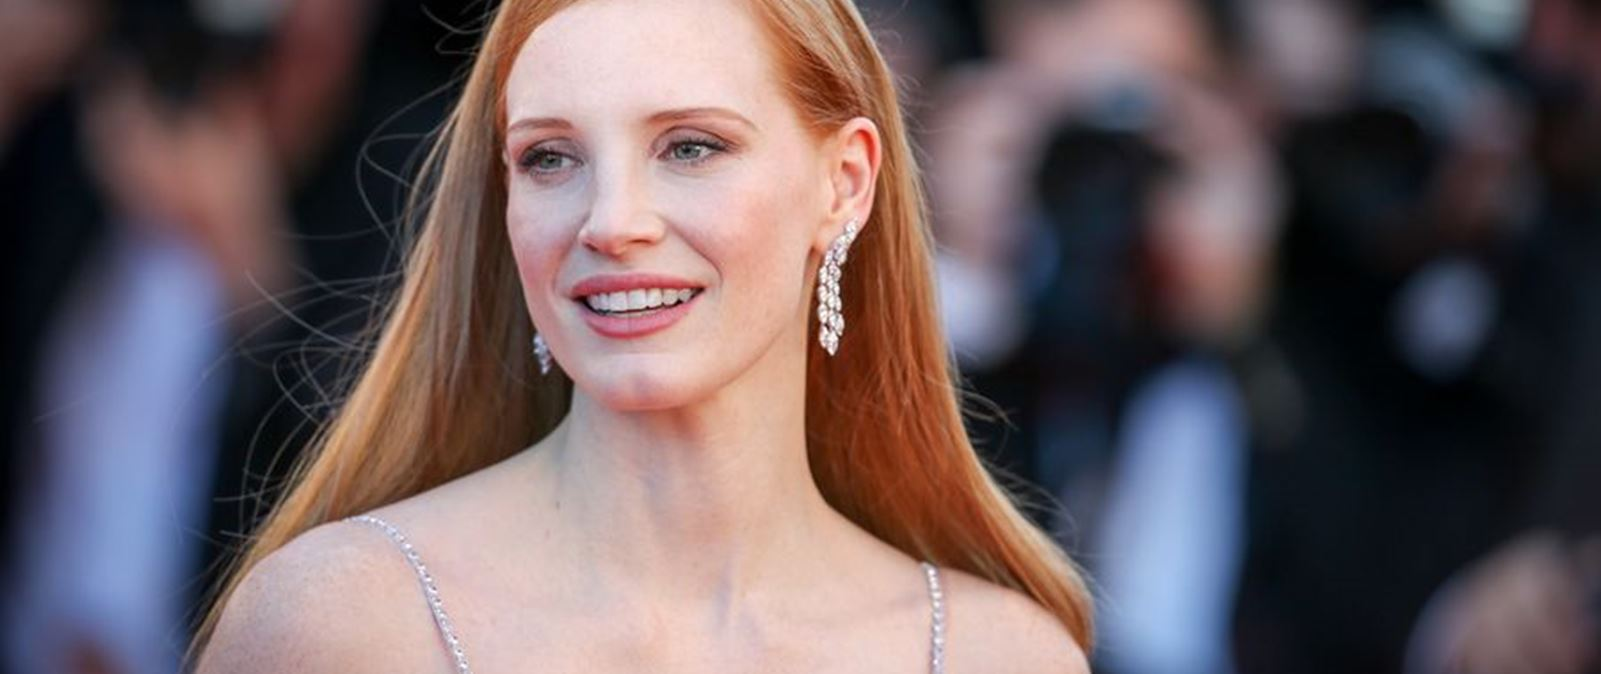 Jessica Chastain: Ποια είναι η νέα της beauty συνεργασία;